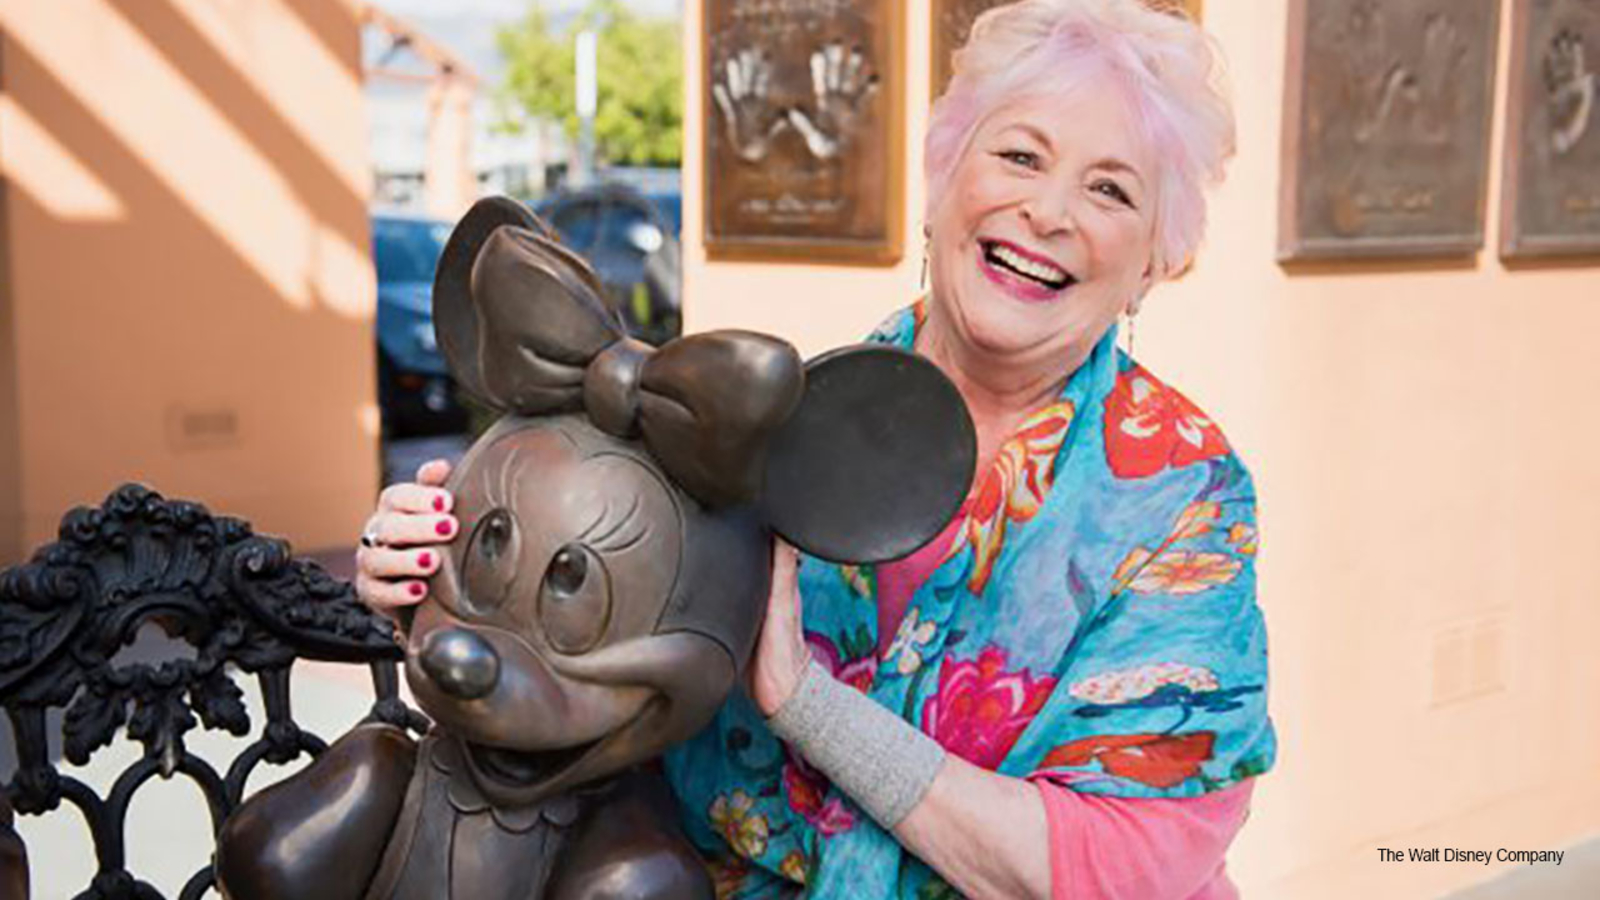 Russi Taylor, the official voice of Minnie Mouse, dies at 75